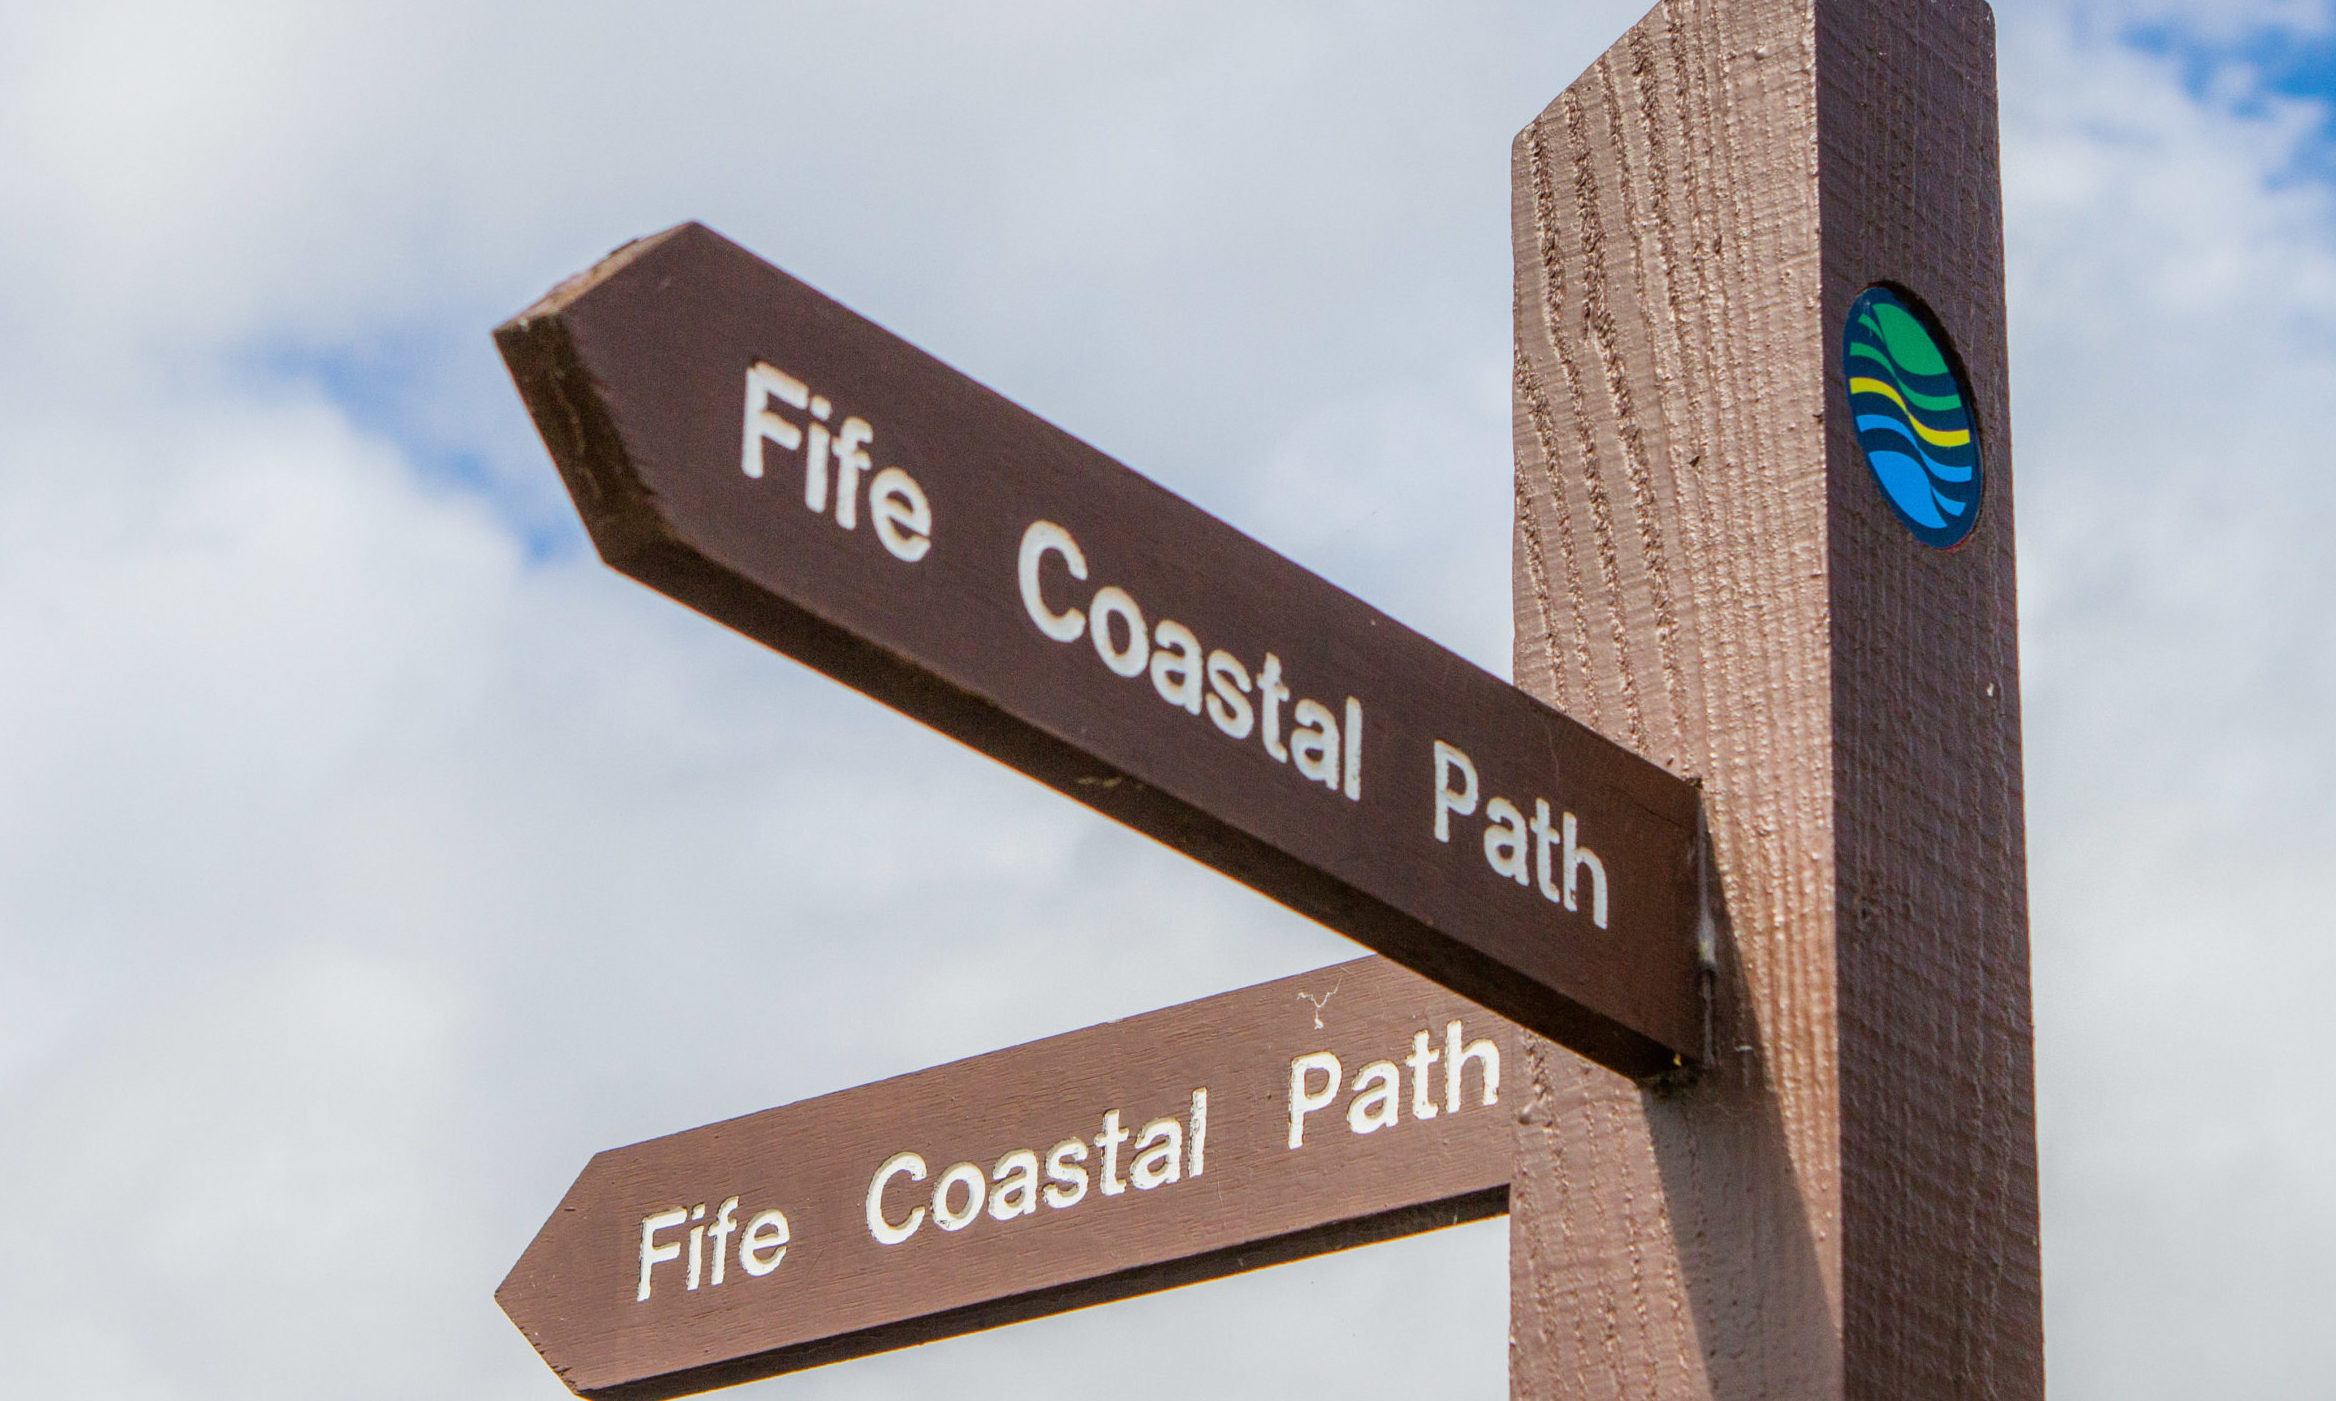 The Fife Coastal Path.